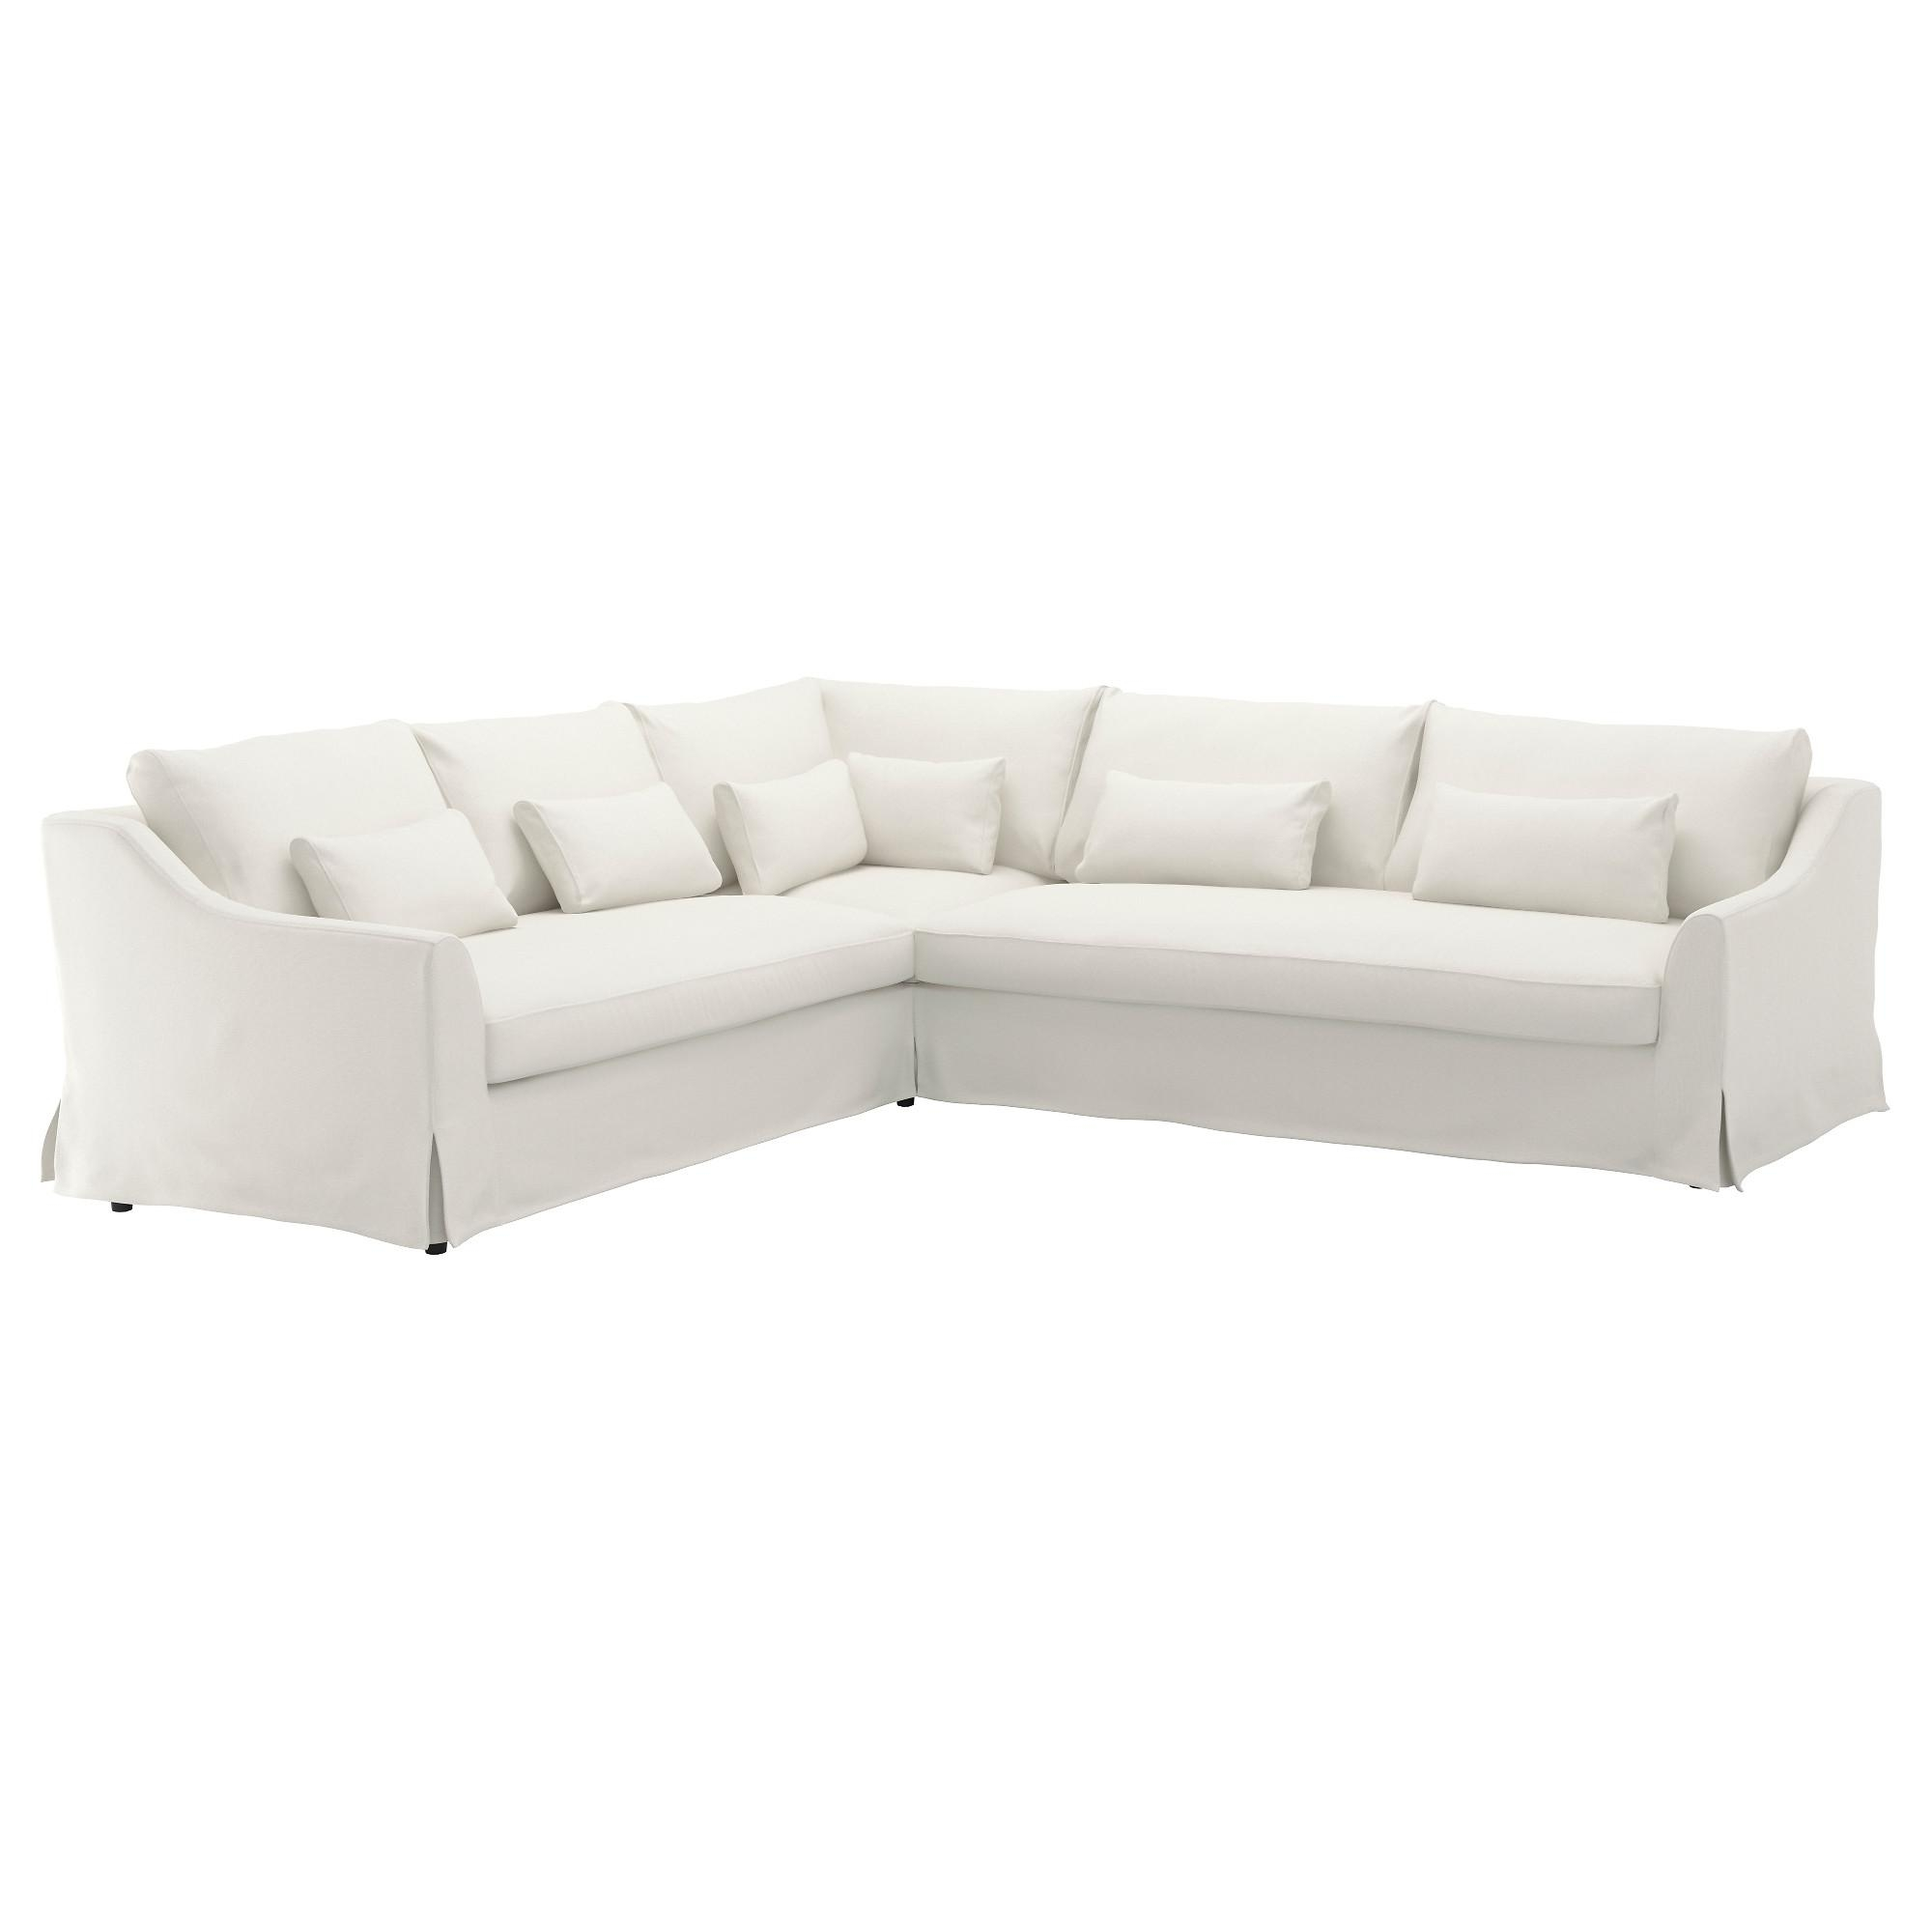 Sofas : Marvelous White Chaise Sofa White Fabric Sectional Sofa Intended For White Fabric Sofas (View 11 of 20)